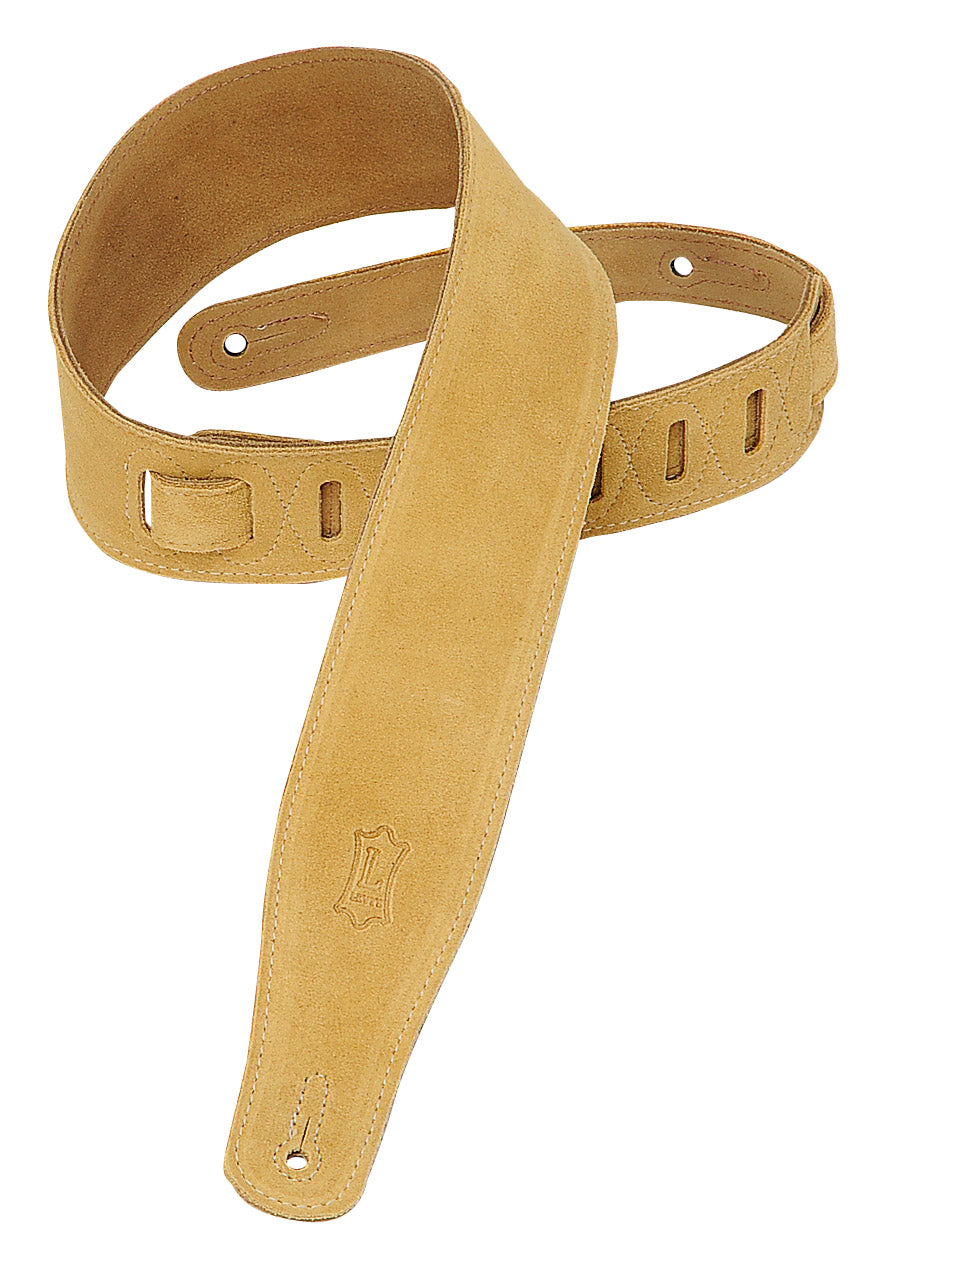 "LEVY'S 2.5"" SUEDE GUITAR STRAP TAN"